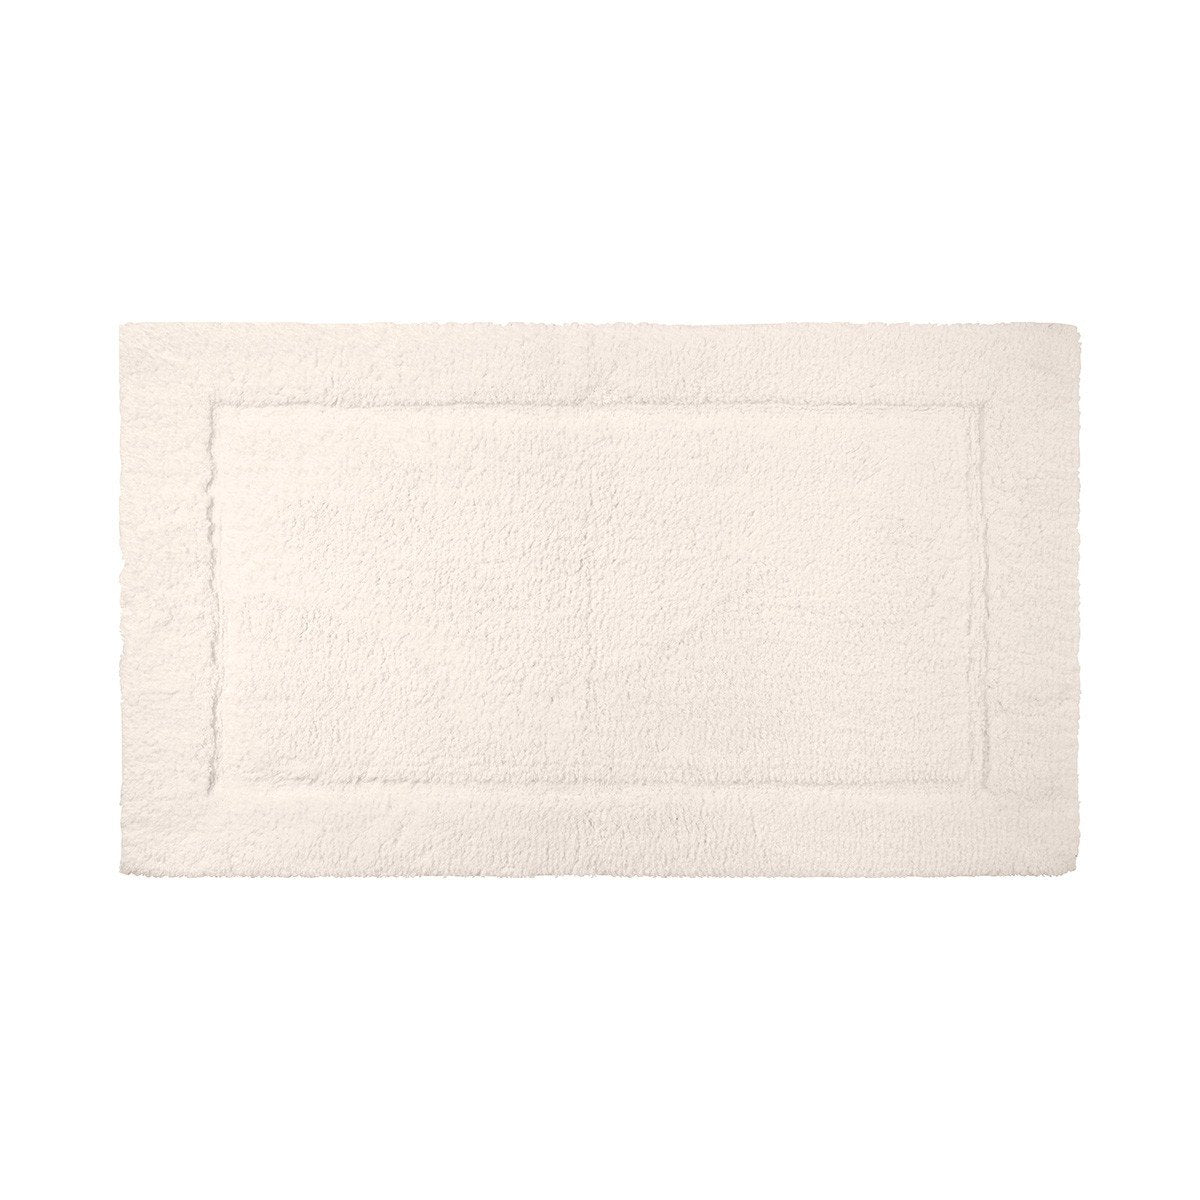 Prestige Nacre Bath Rug by Yves Delorme | Fig Linens and Home - Ivory, cotton, bath mat, rug